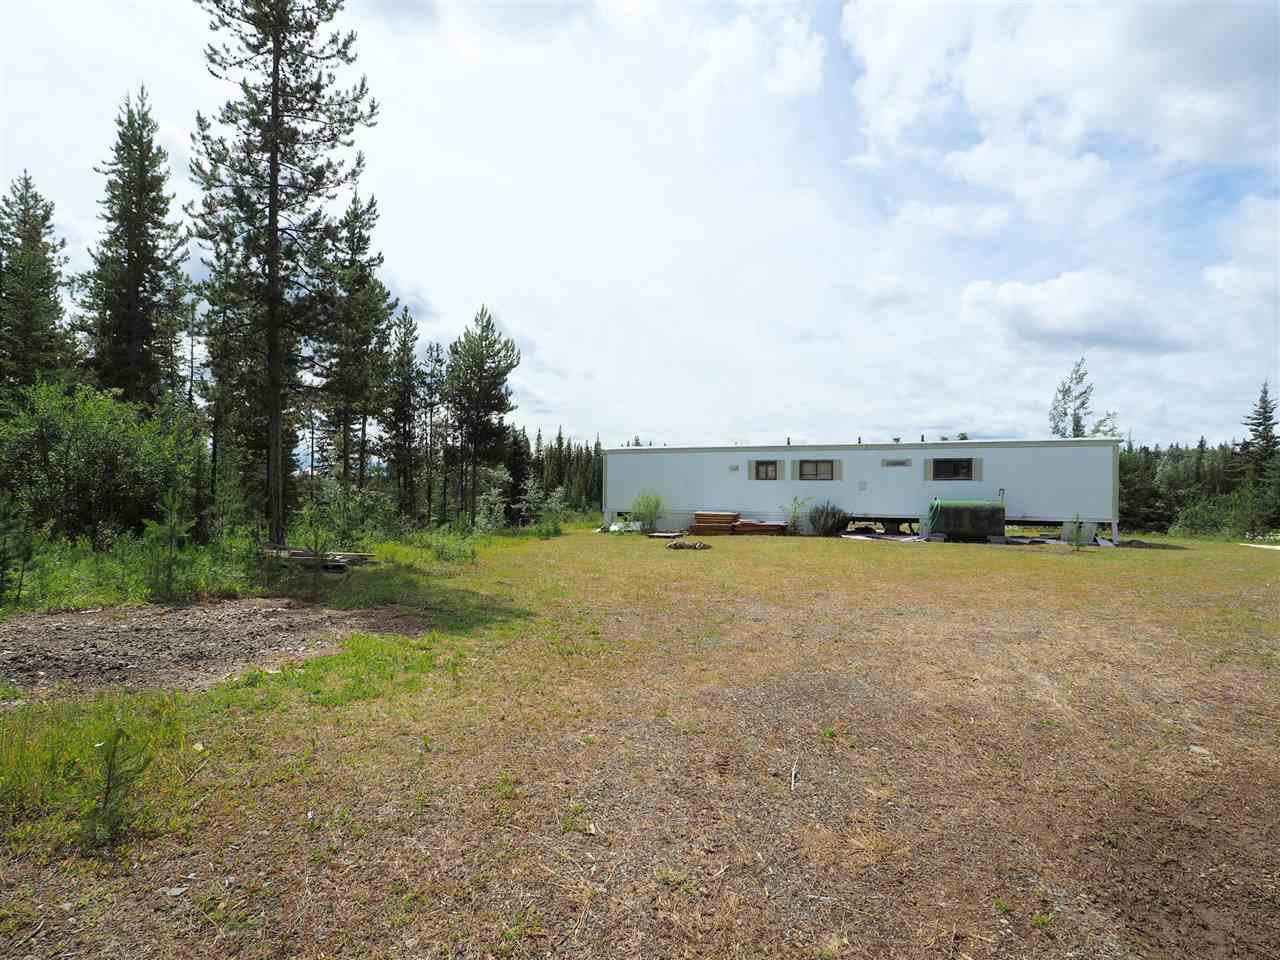 Photo 3: Photos: 5532 LITTLE FORT 24 Highway in Lone Butte: Lone Butte/Green Lk/Watch Lk Land for sale (100 Mile House (Zone 10))  : MLS®# R2419528